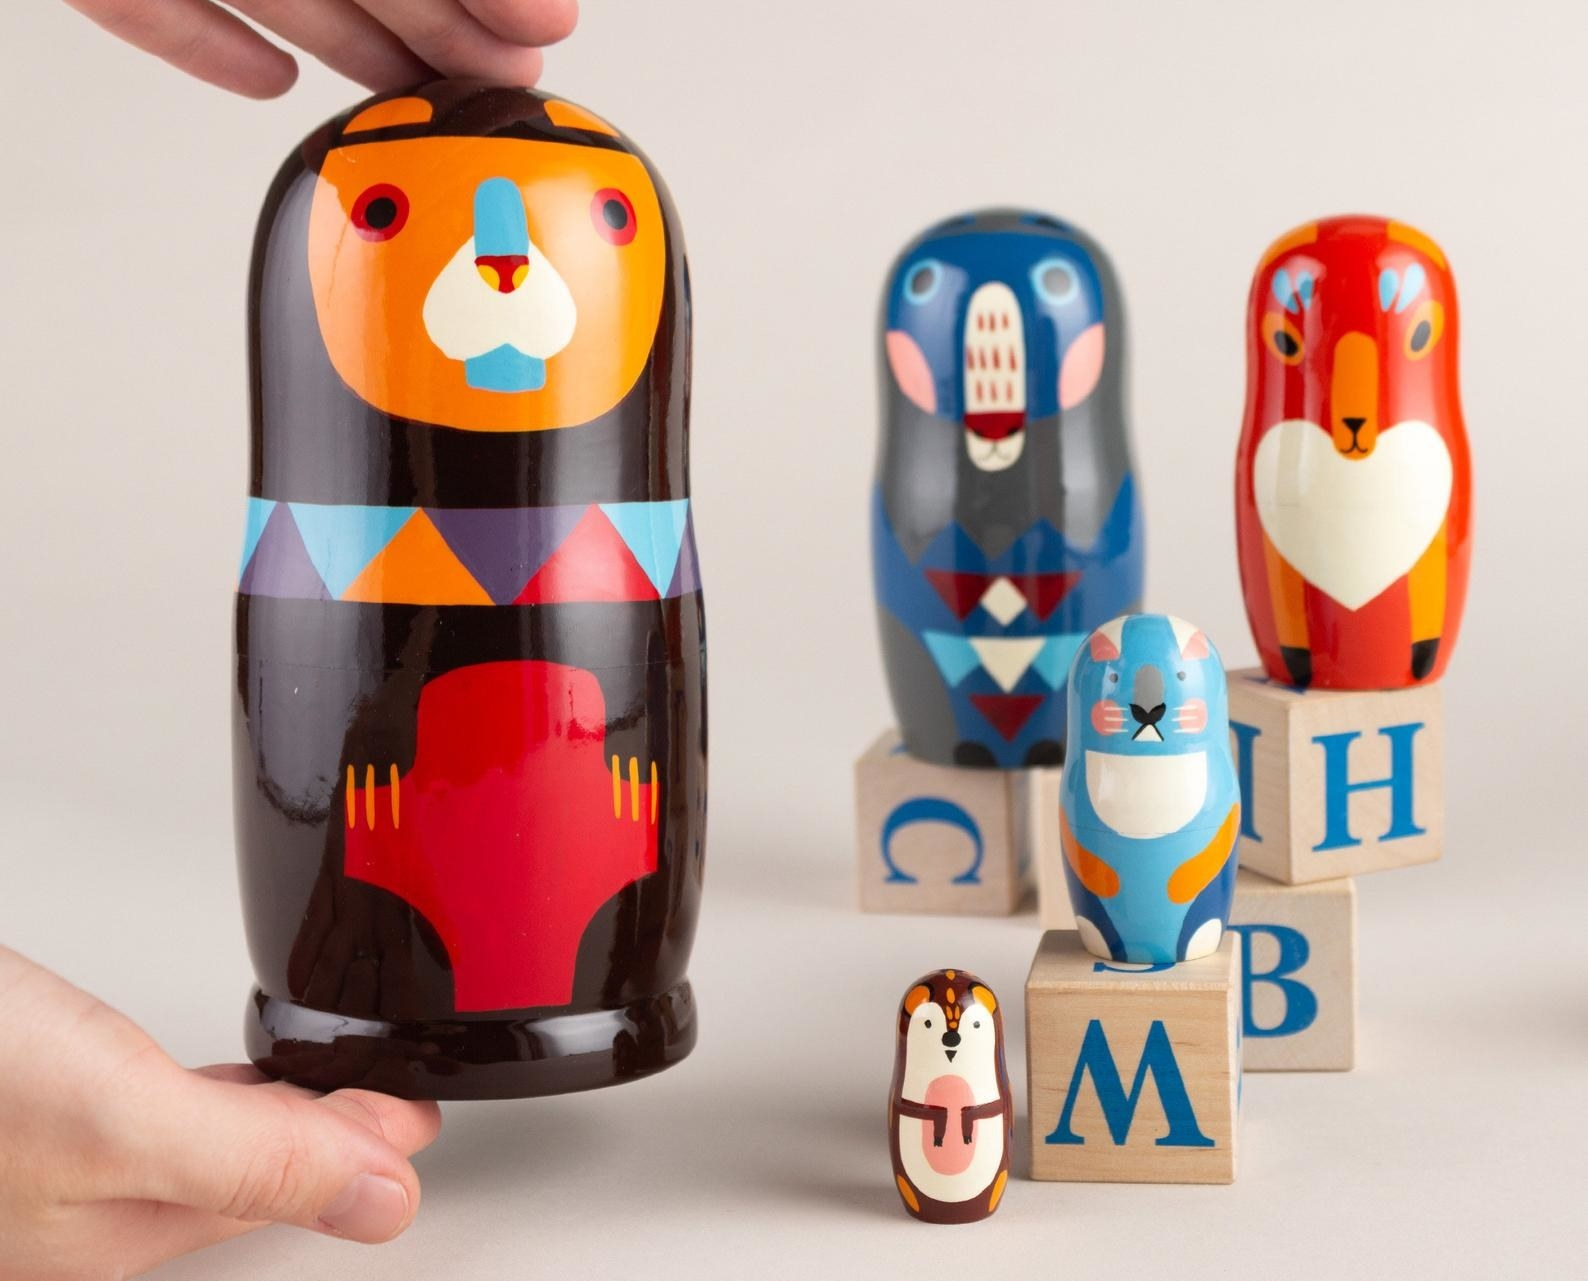 Five colorful Russian nesting dolls of various animals